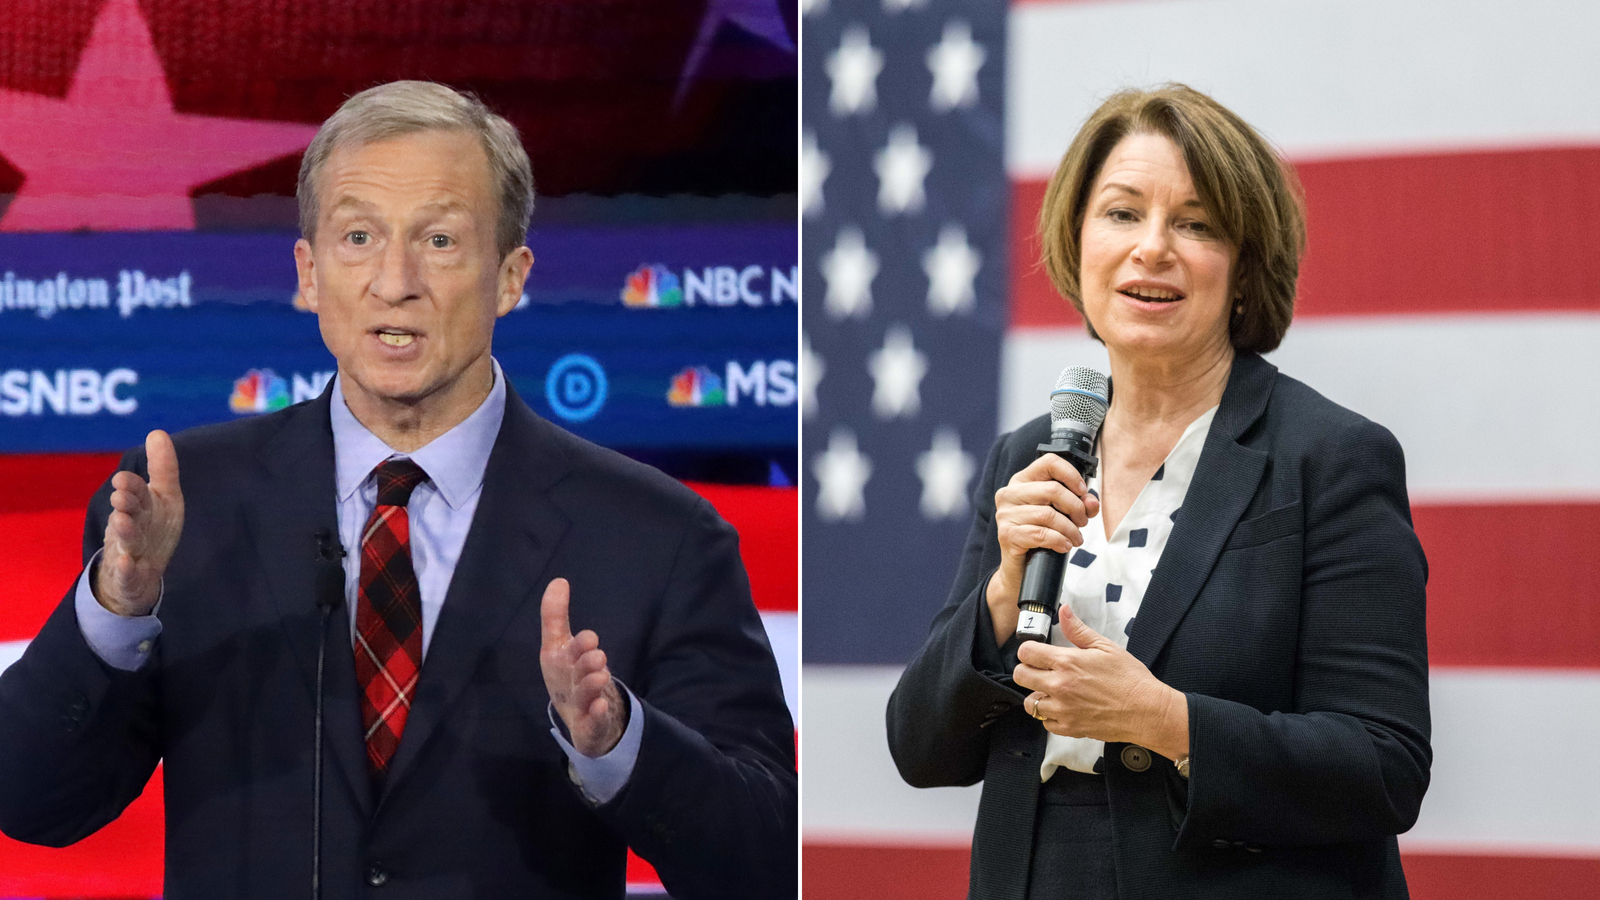 Klobuchar and Steyer couldn't name Mexico's president while campaigning in Nevada